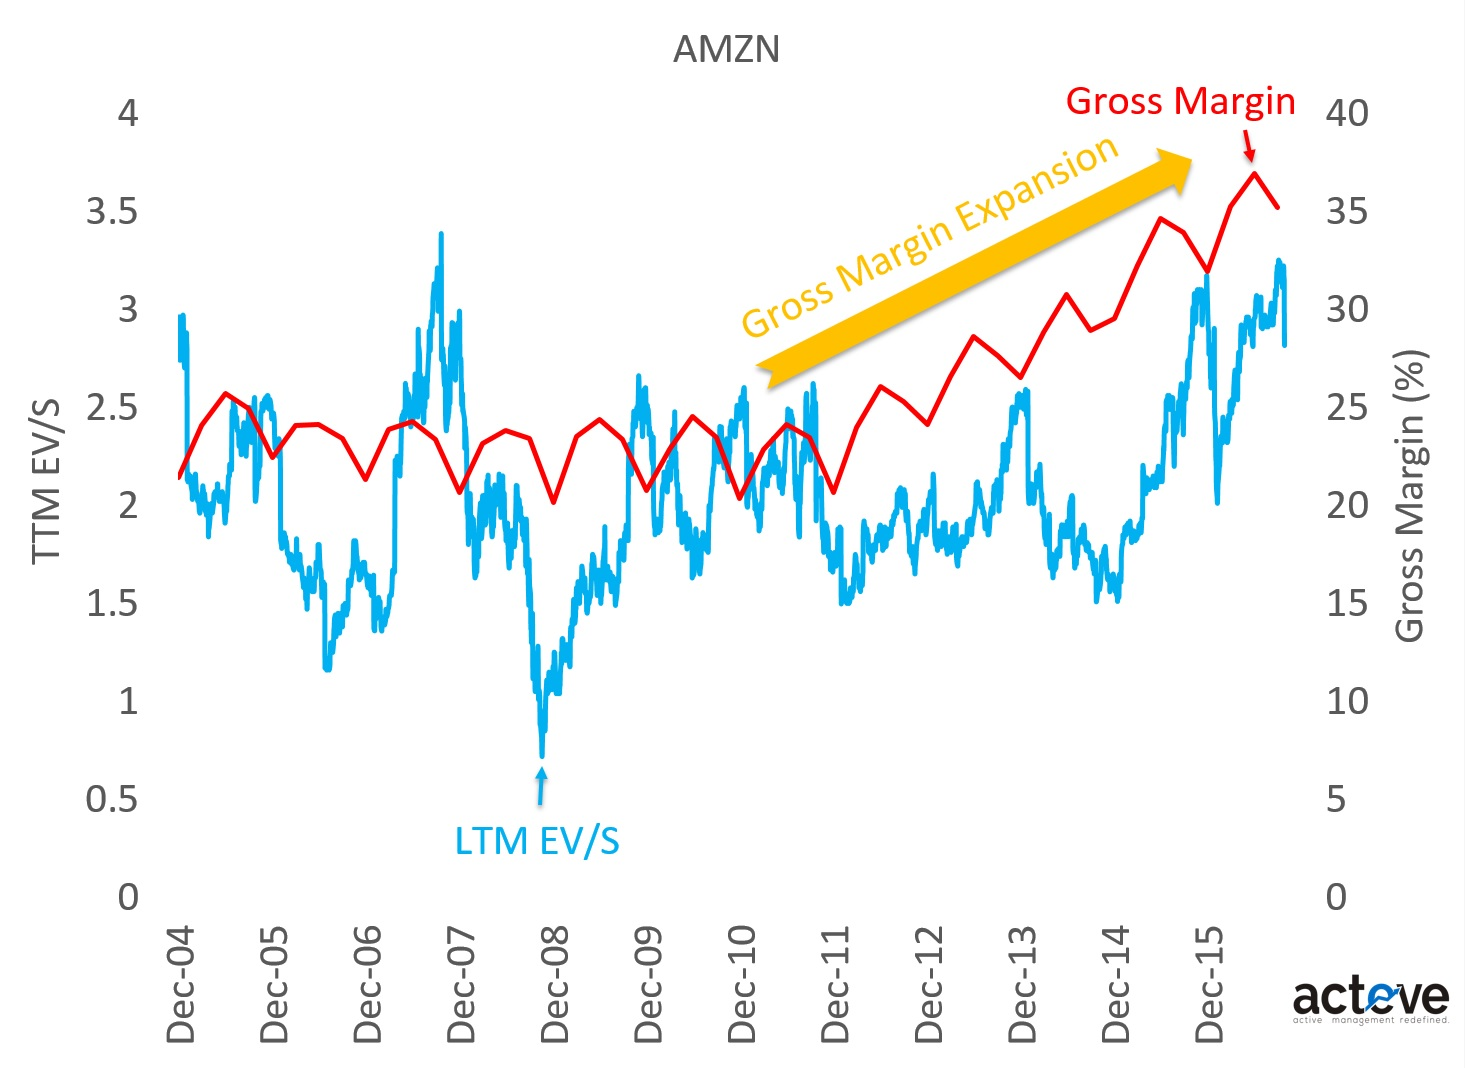 AMZN EV/S vs. Gross Margins